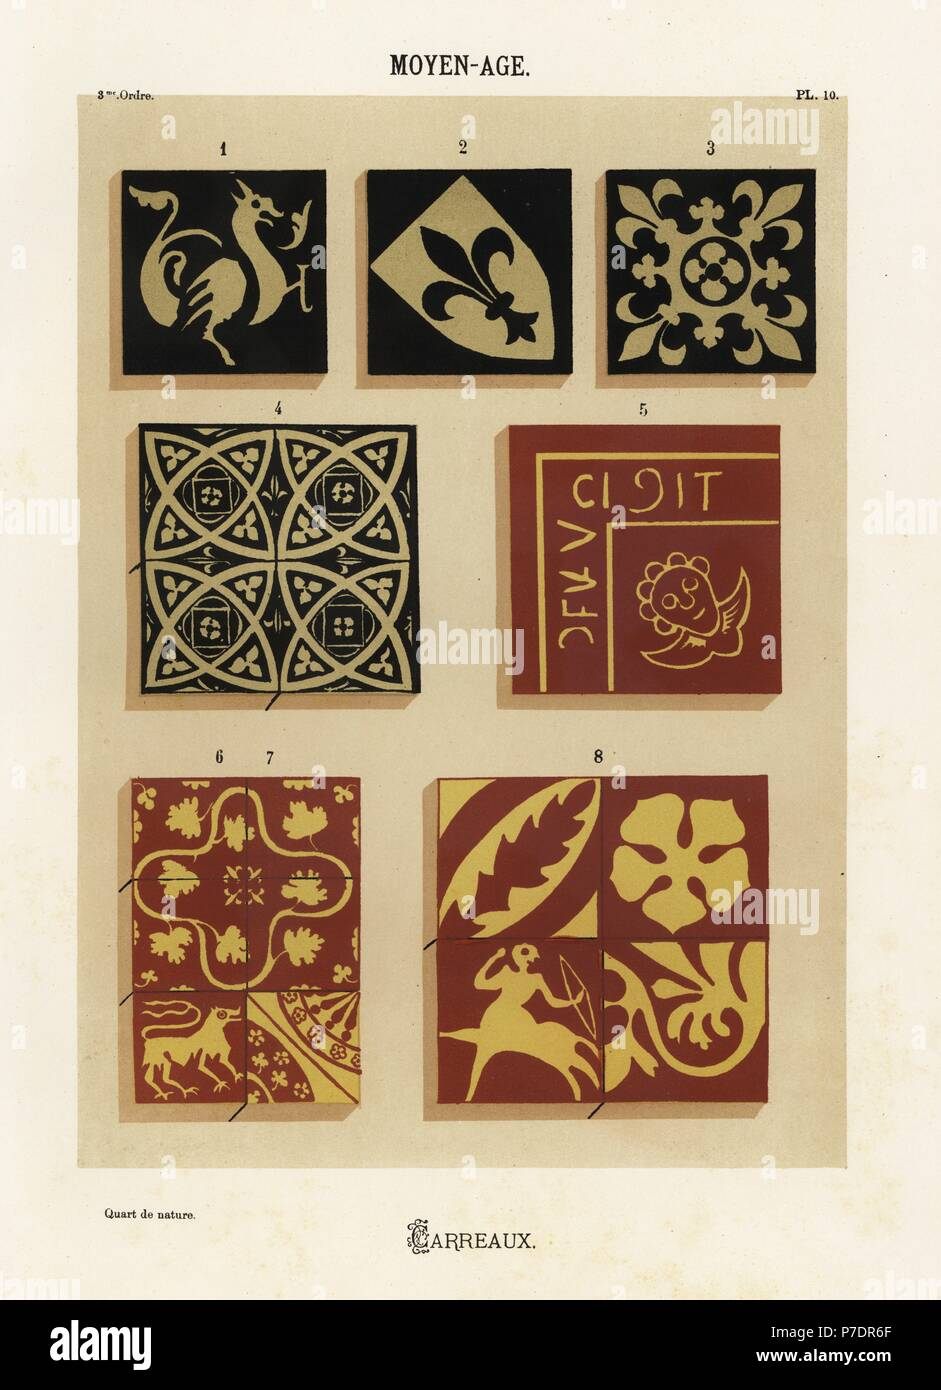 Ceramic tiles with heraldic designs, Middle Ages. Hand-finished ...